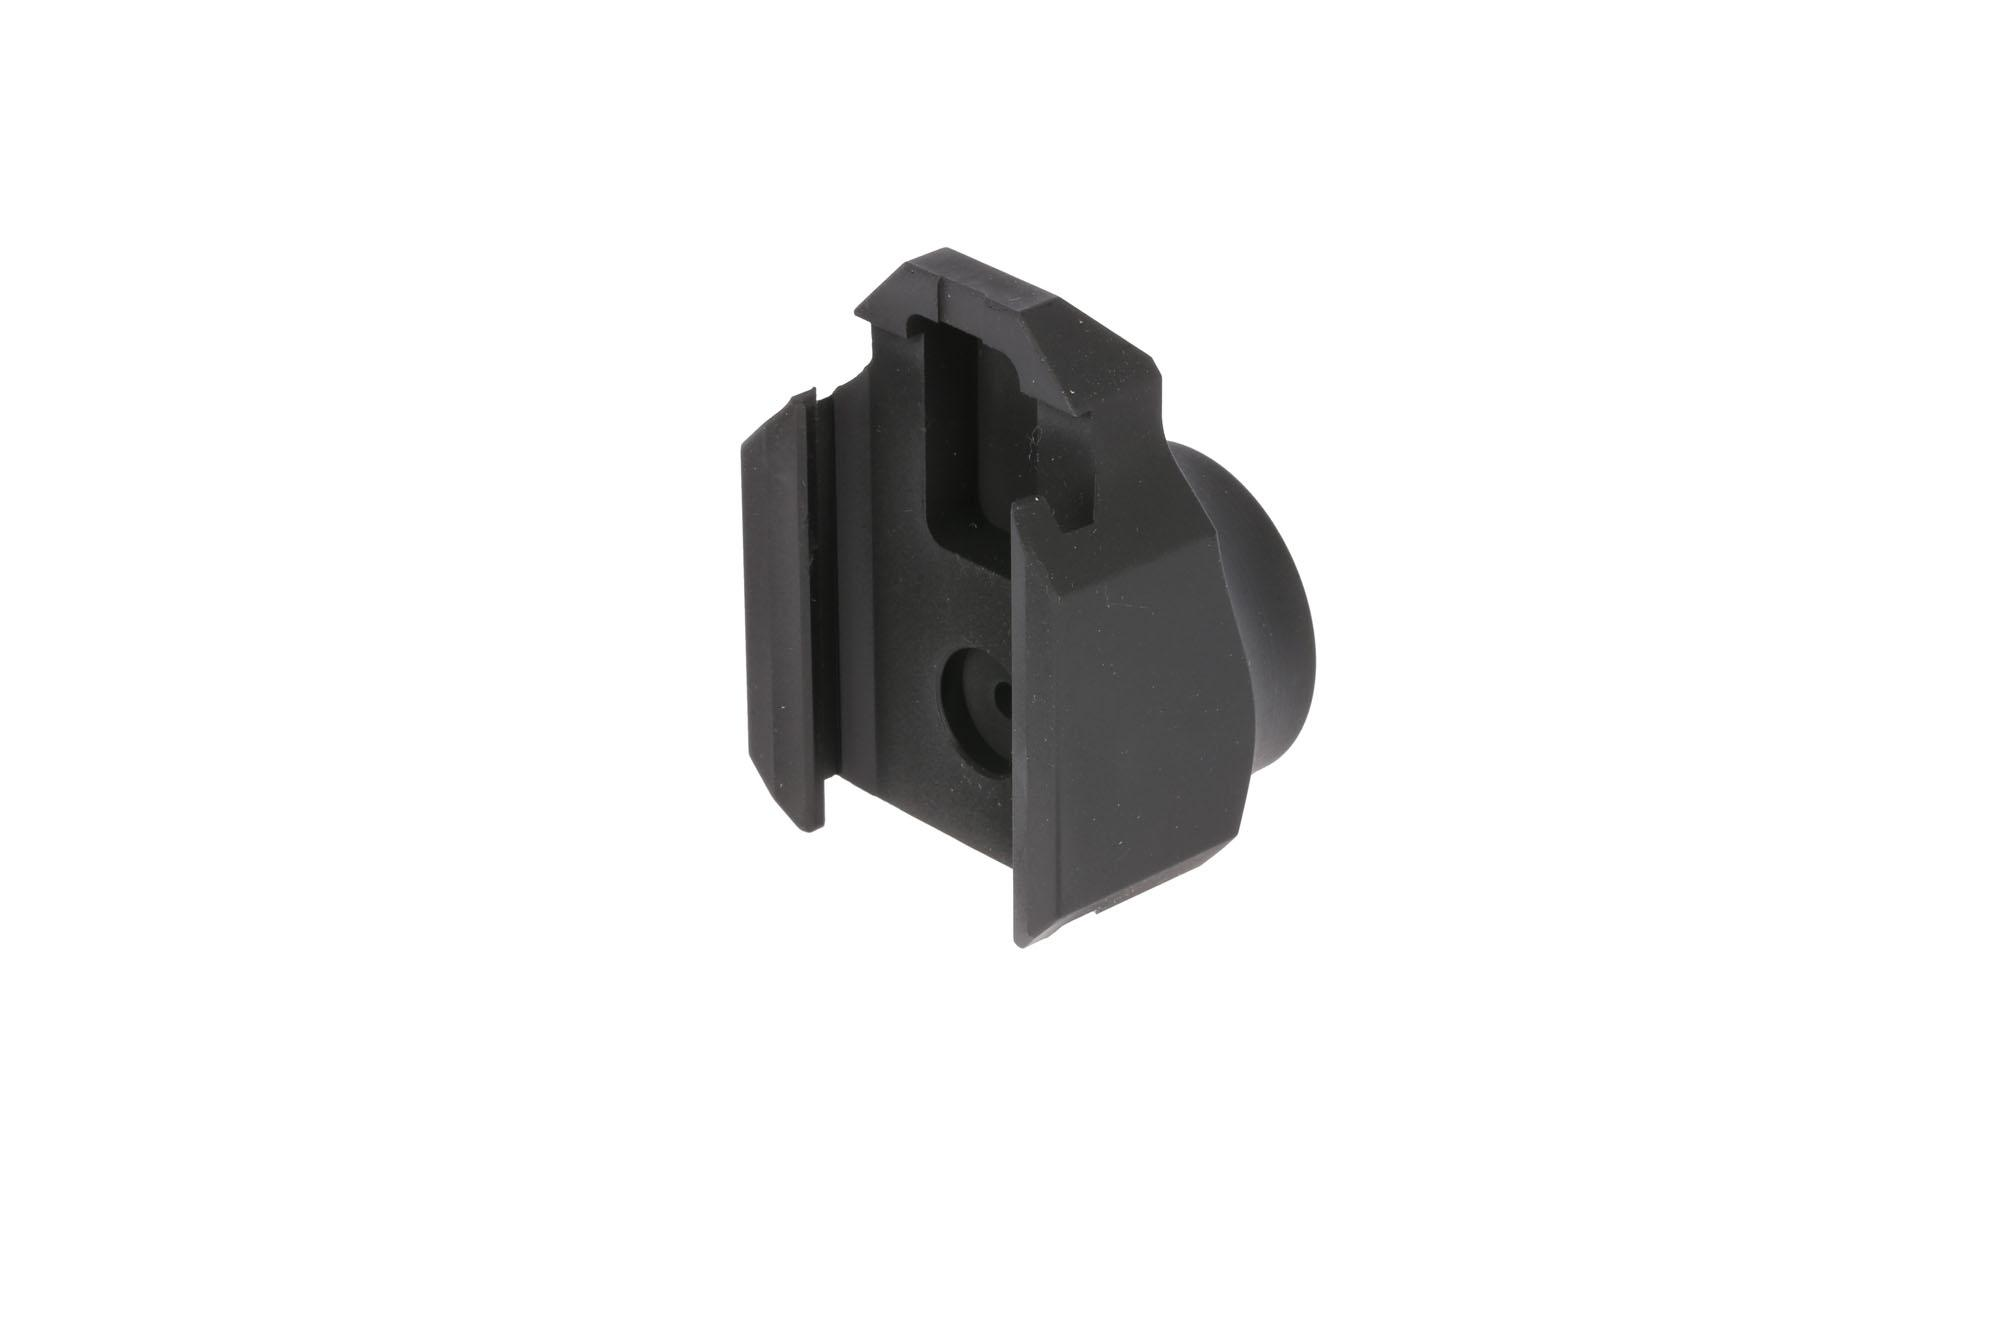 Holsters TITAN CZ Scorpion Folding Stock Adapter Hinge 922R by